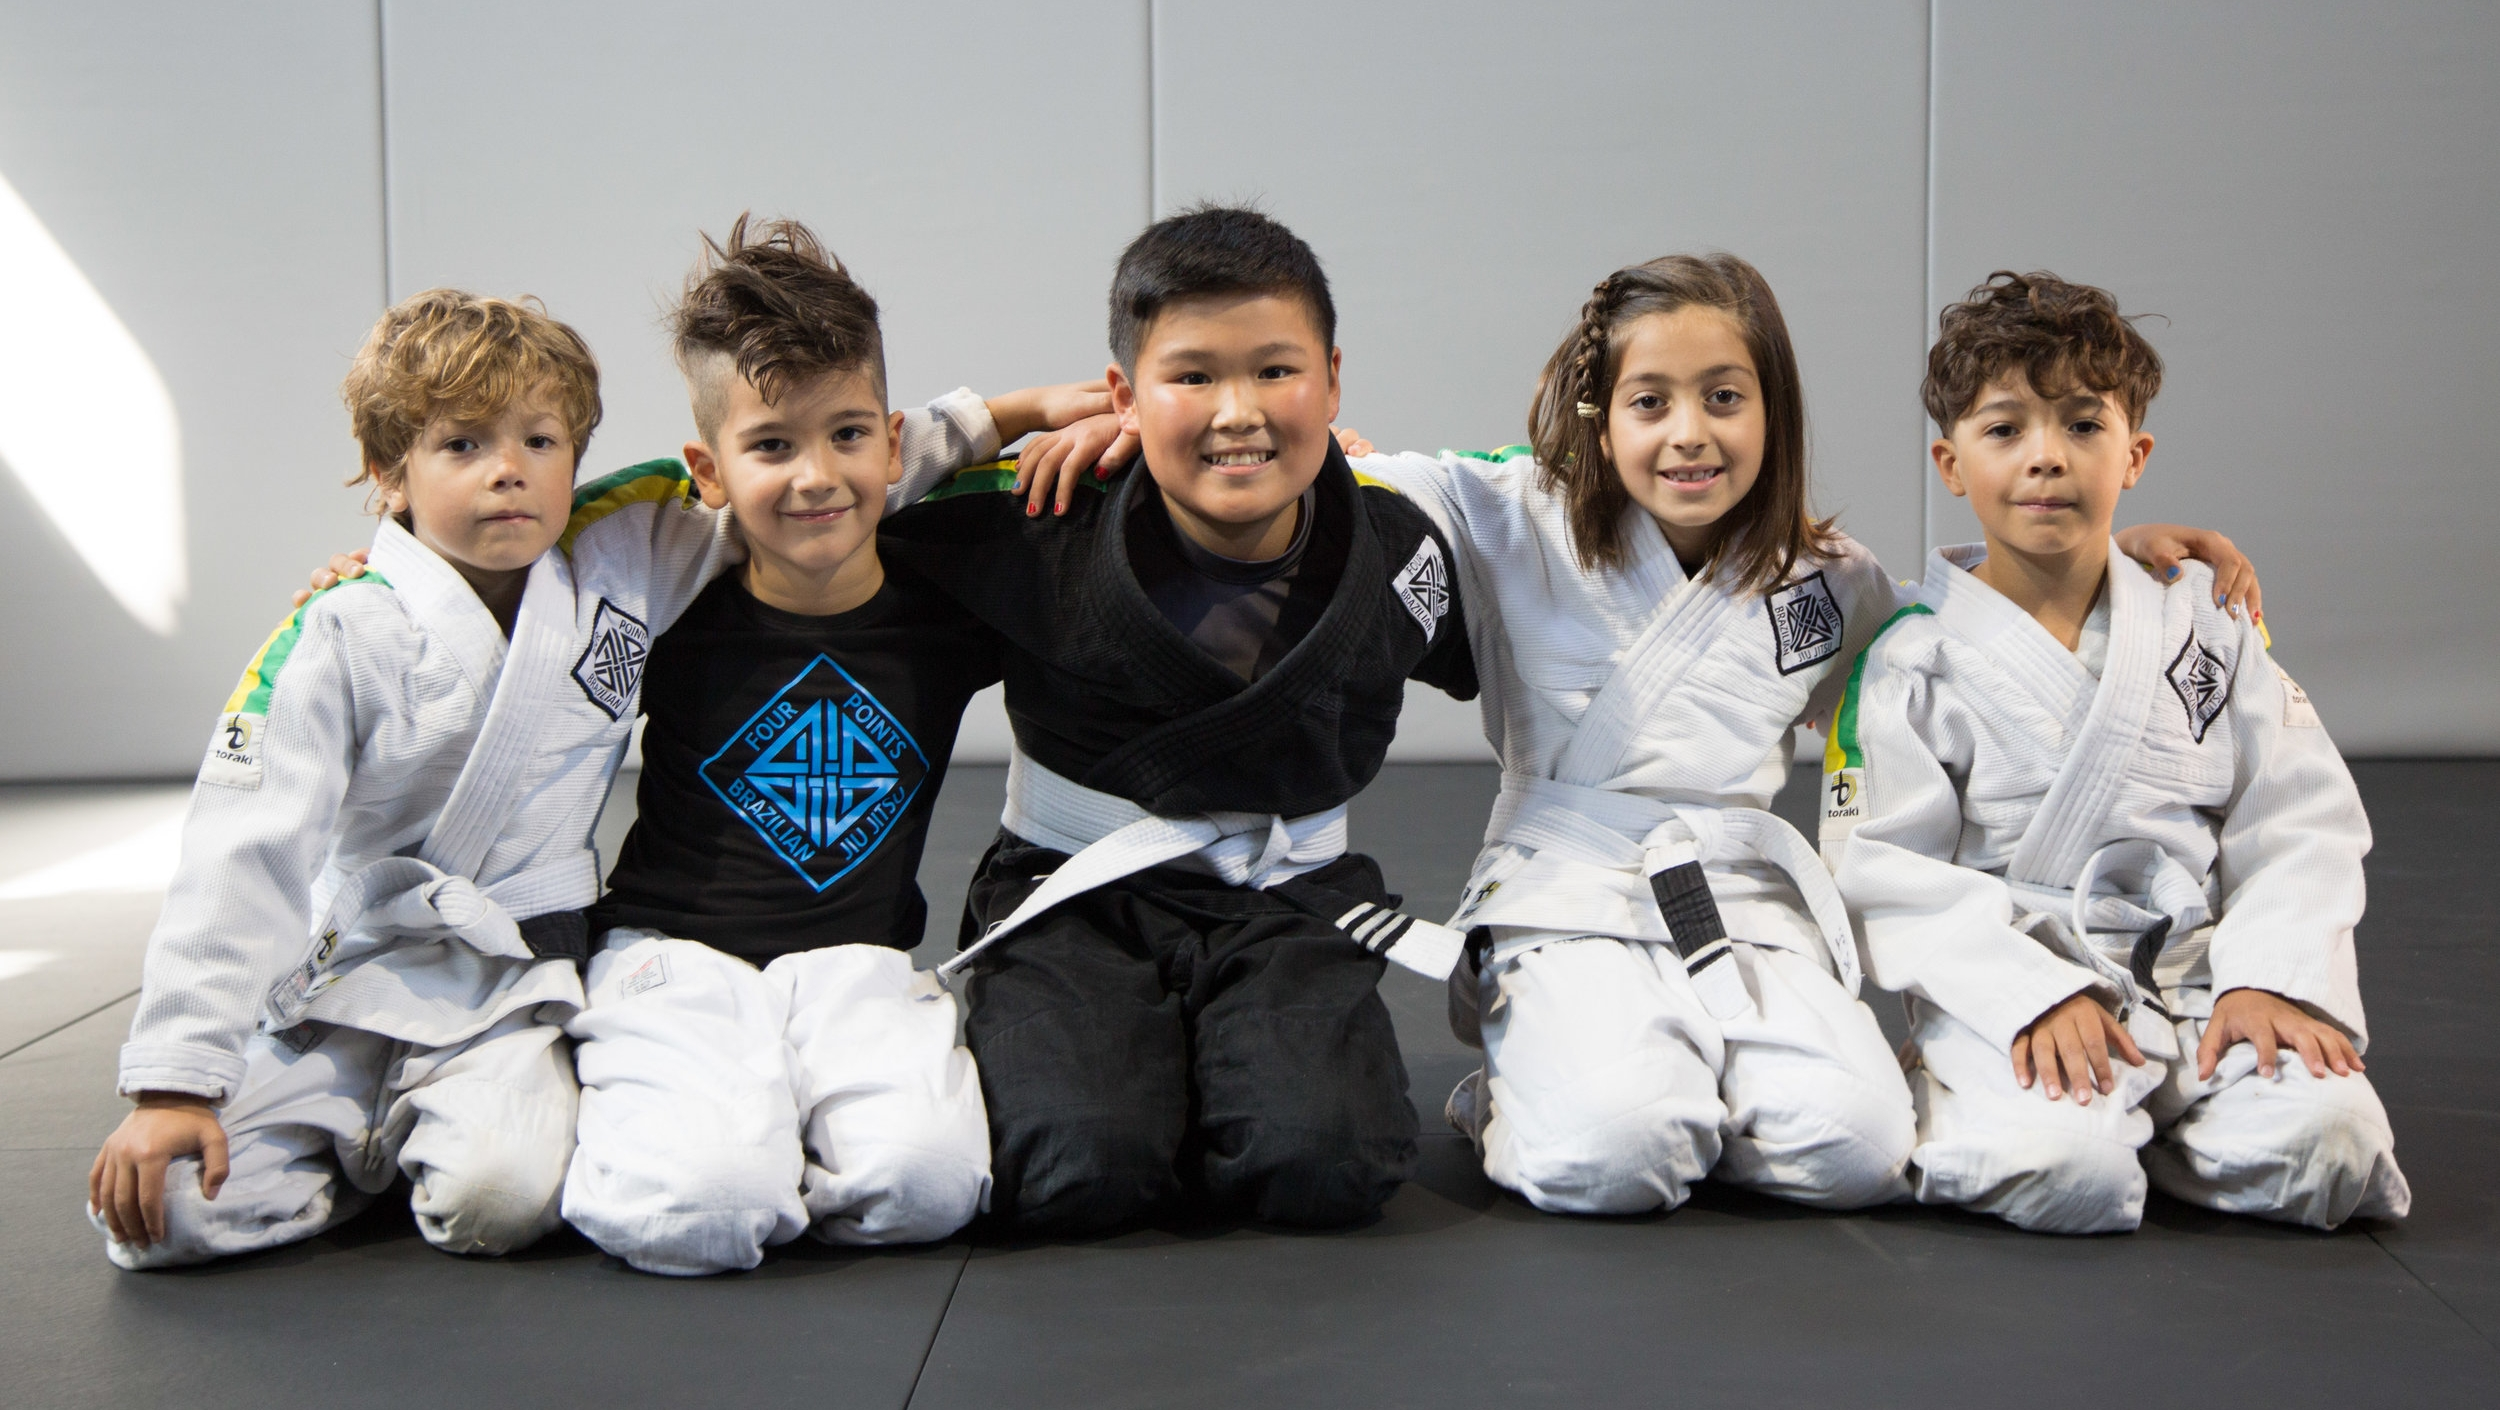 4POINTSBJJ_yOUTH5